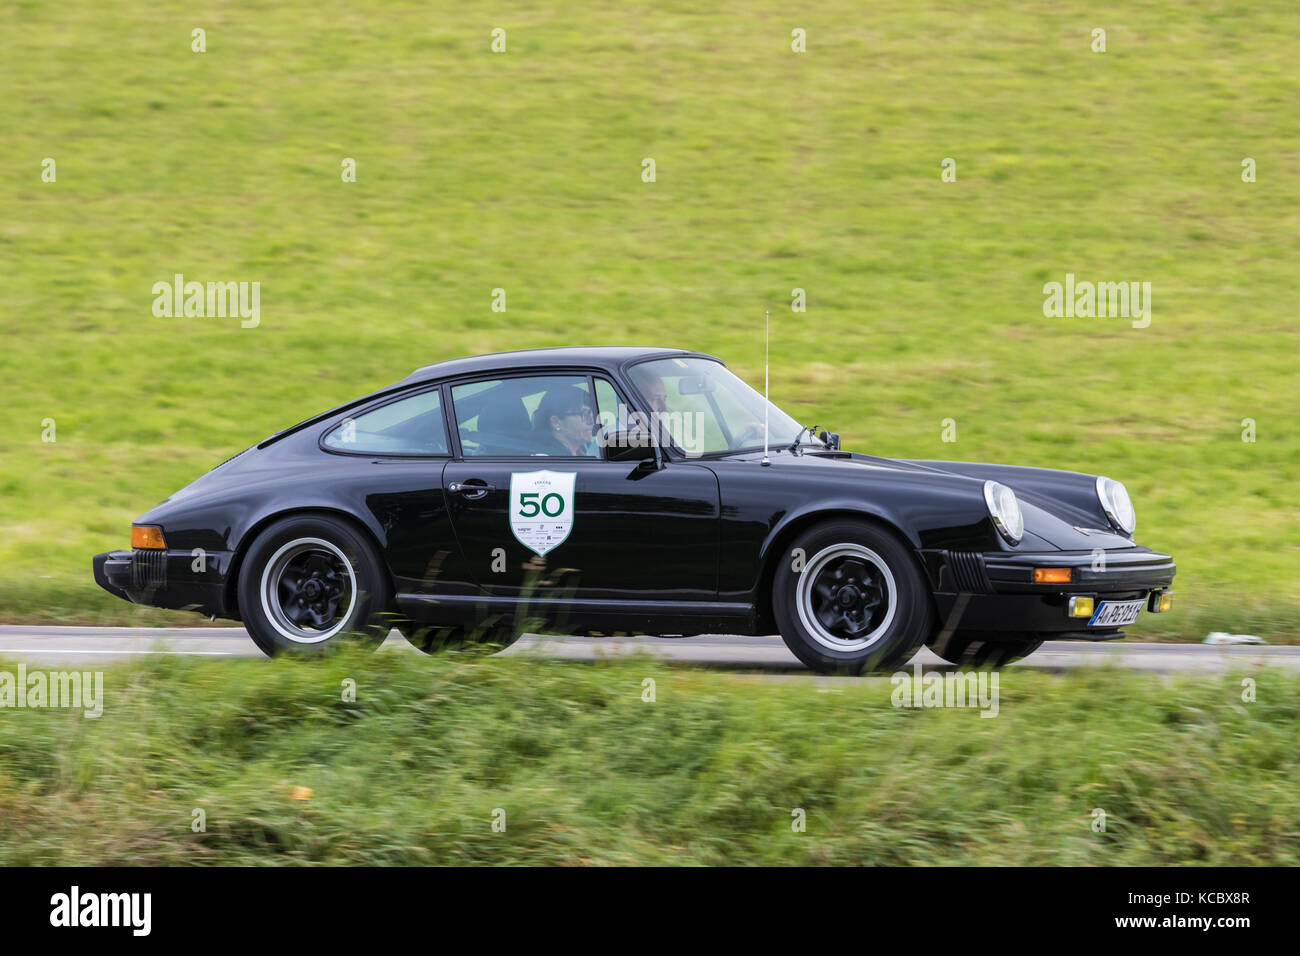 historic porsche 911 stock photos historic porsche 911 stock images alamy. Black Bedroom Furniture Sets. Home Design Ideas